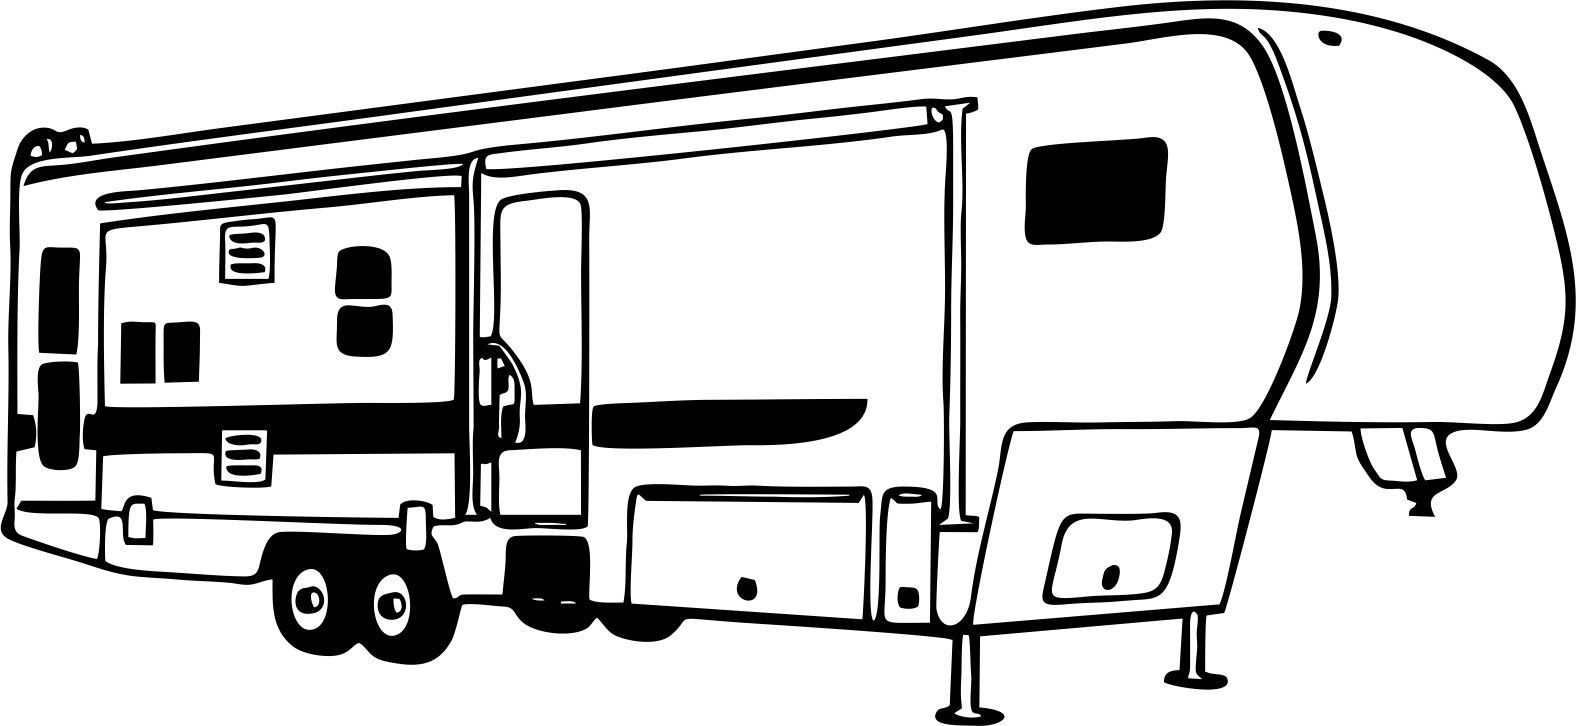 Camping 5Th Wheel Rv Camper Car Truck Window Wall Laptop.